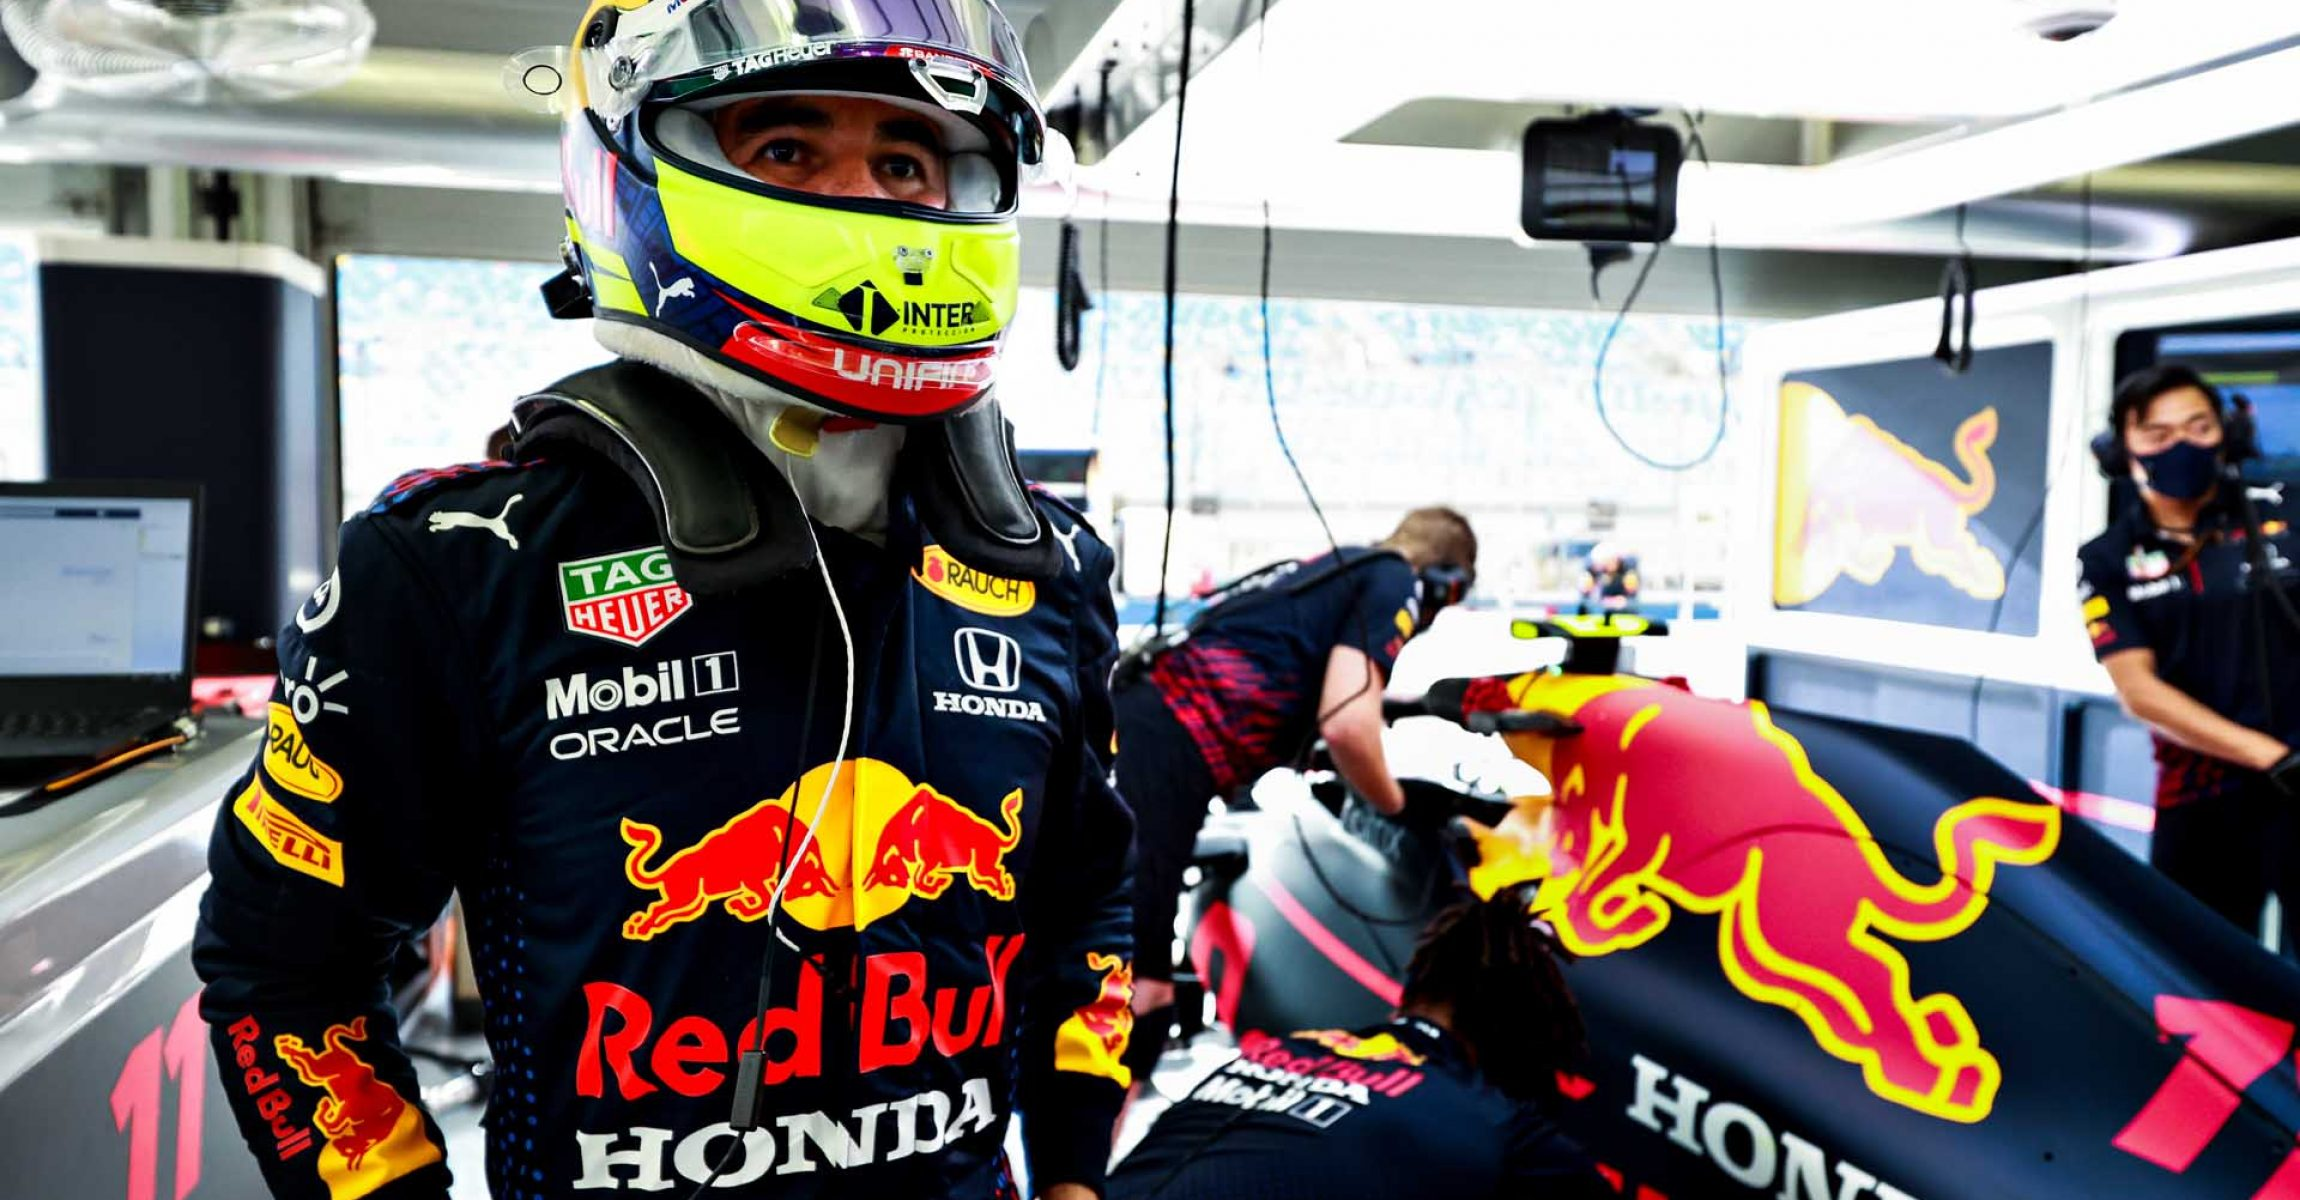 BAHRAIN, BAHRAIN - MARCH 26: Sergio Perez of Mexico and Red Bull Racing prepares to drive in the garage during practice ahead of the F1 Grand Prix of Bahrain at Bahrain International Circuit on March 26, 2021 in Bahrain, Bahrain. (Photo by Mark Thompson/Getty Images)